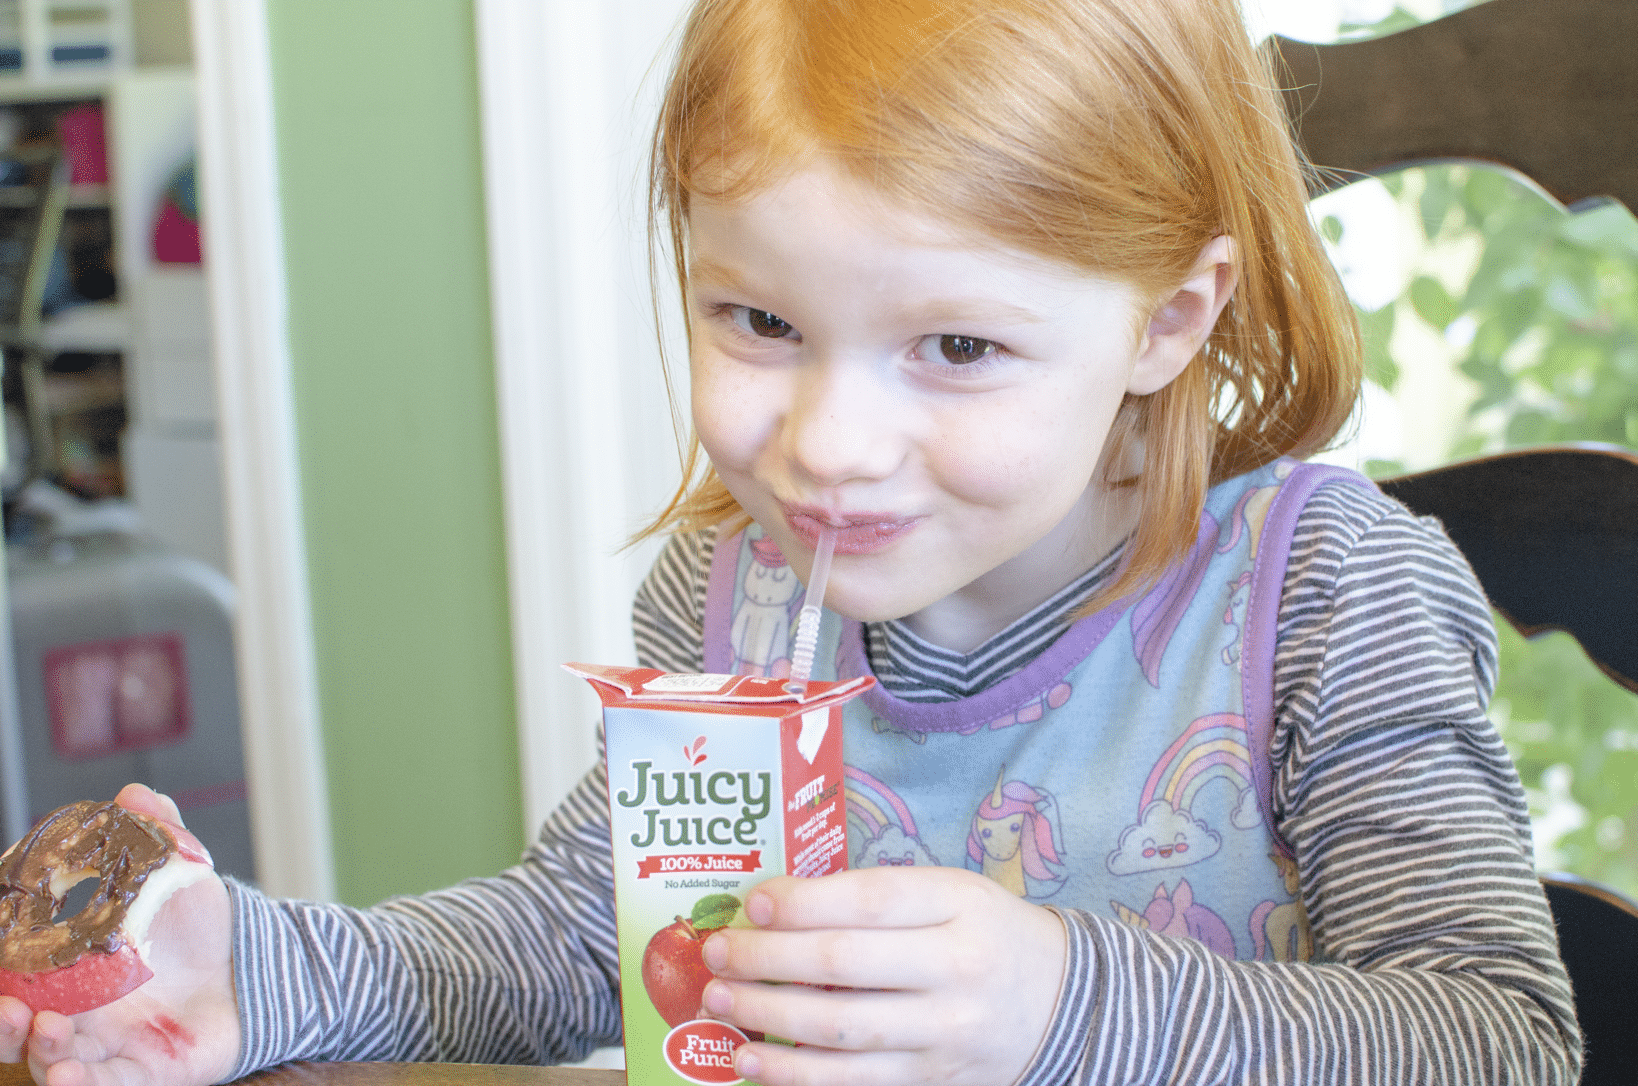 Happy with her juice and apple